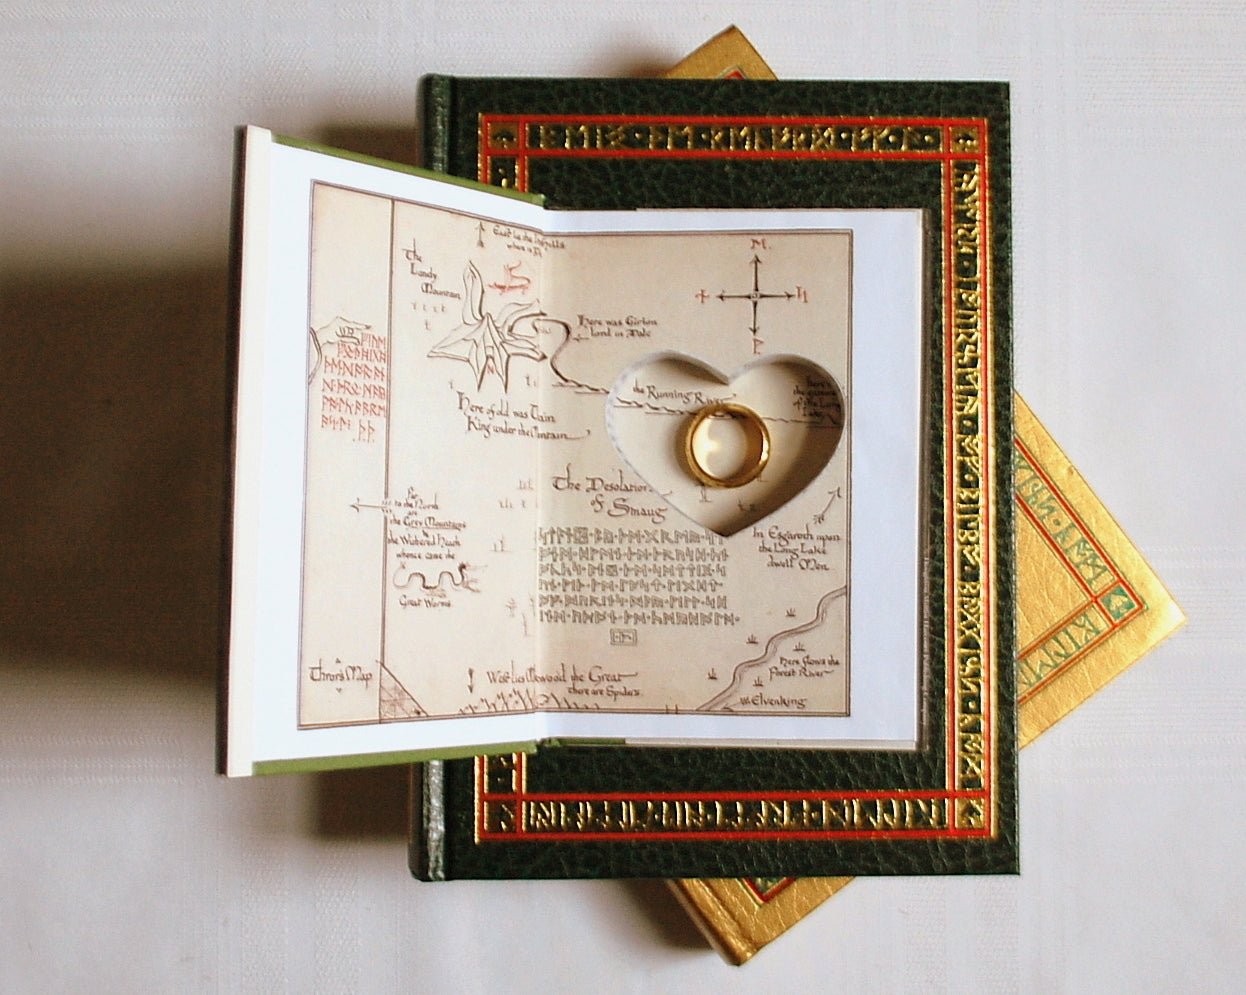 The Hobbit 75th Anniv Pocket Edition with Heart / J.R.R. Tolkien